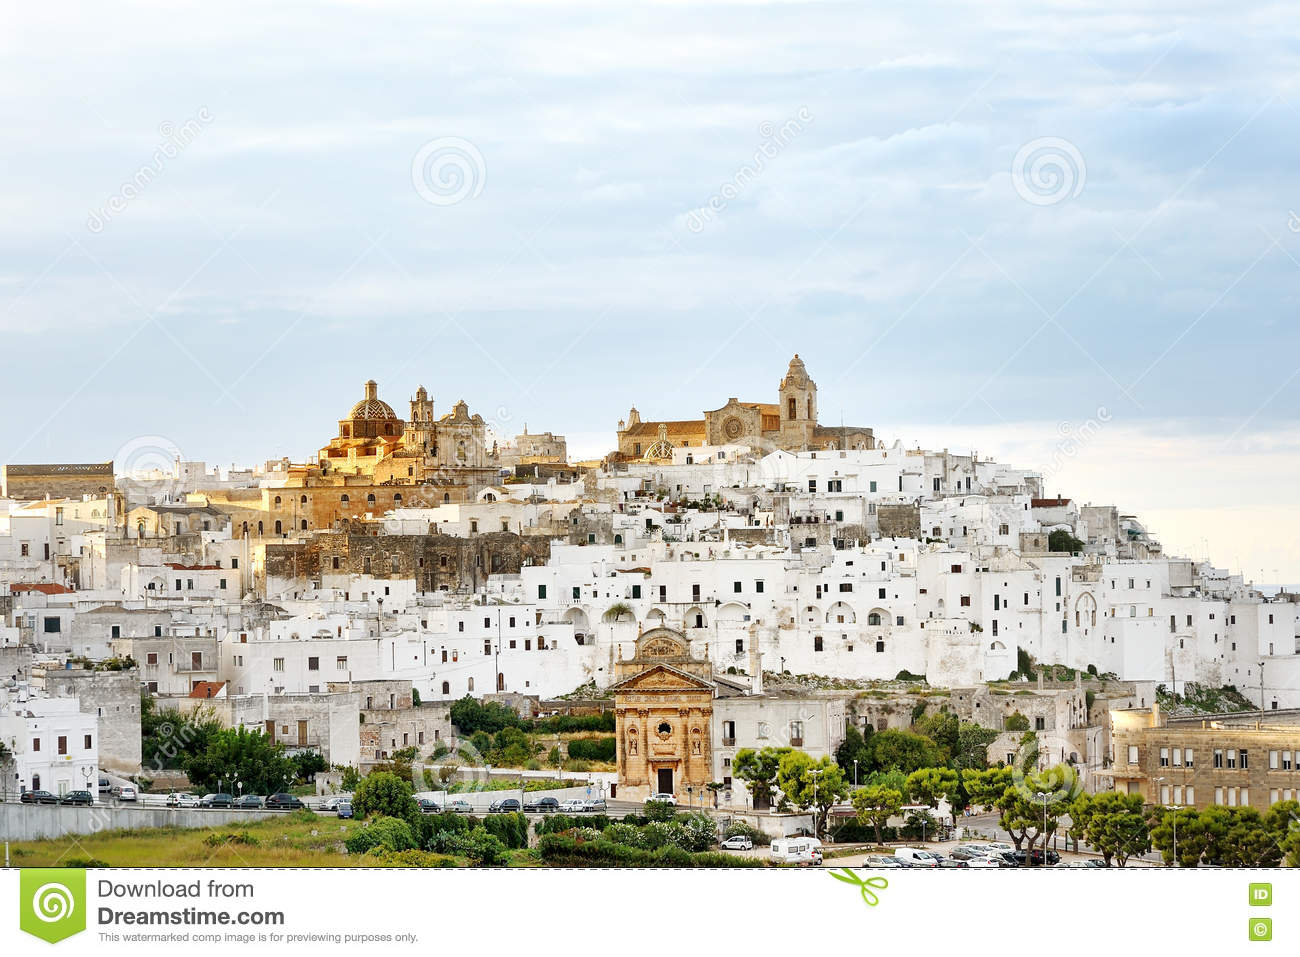 panoramablick der wei en stadt ostuni apulien s d italien stockfoto bild von cityscape. Black Bedroom Furniture Sets. Home Design Ideas